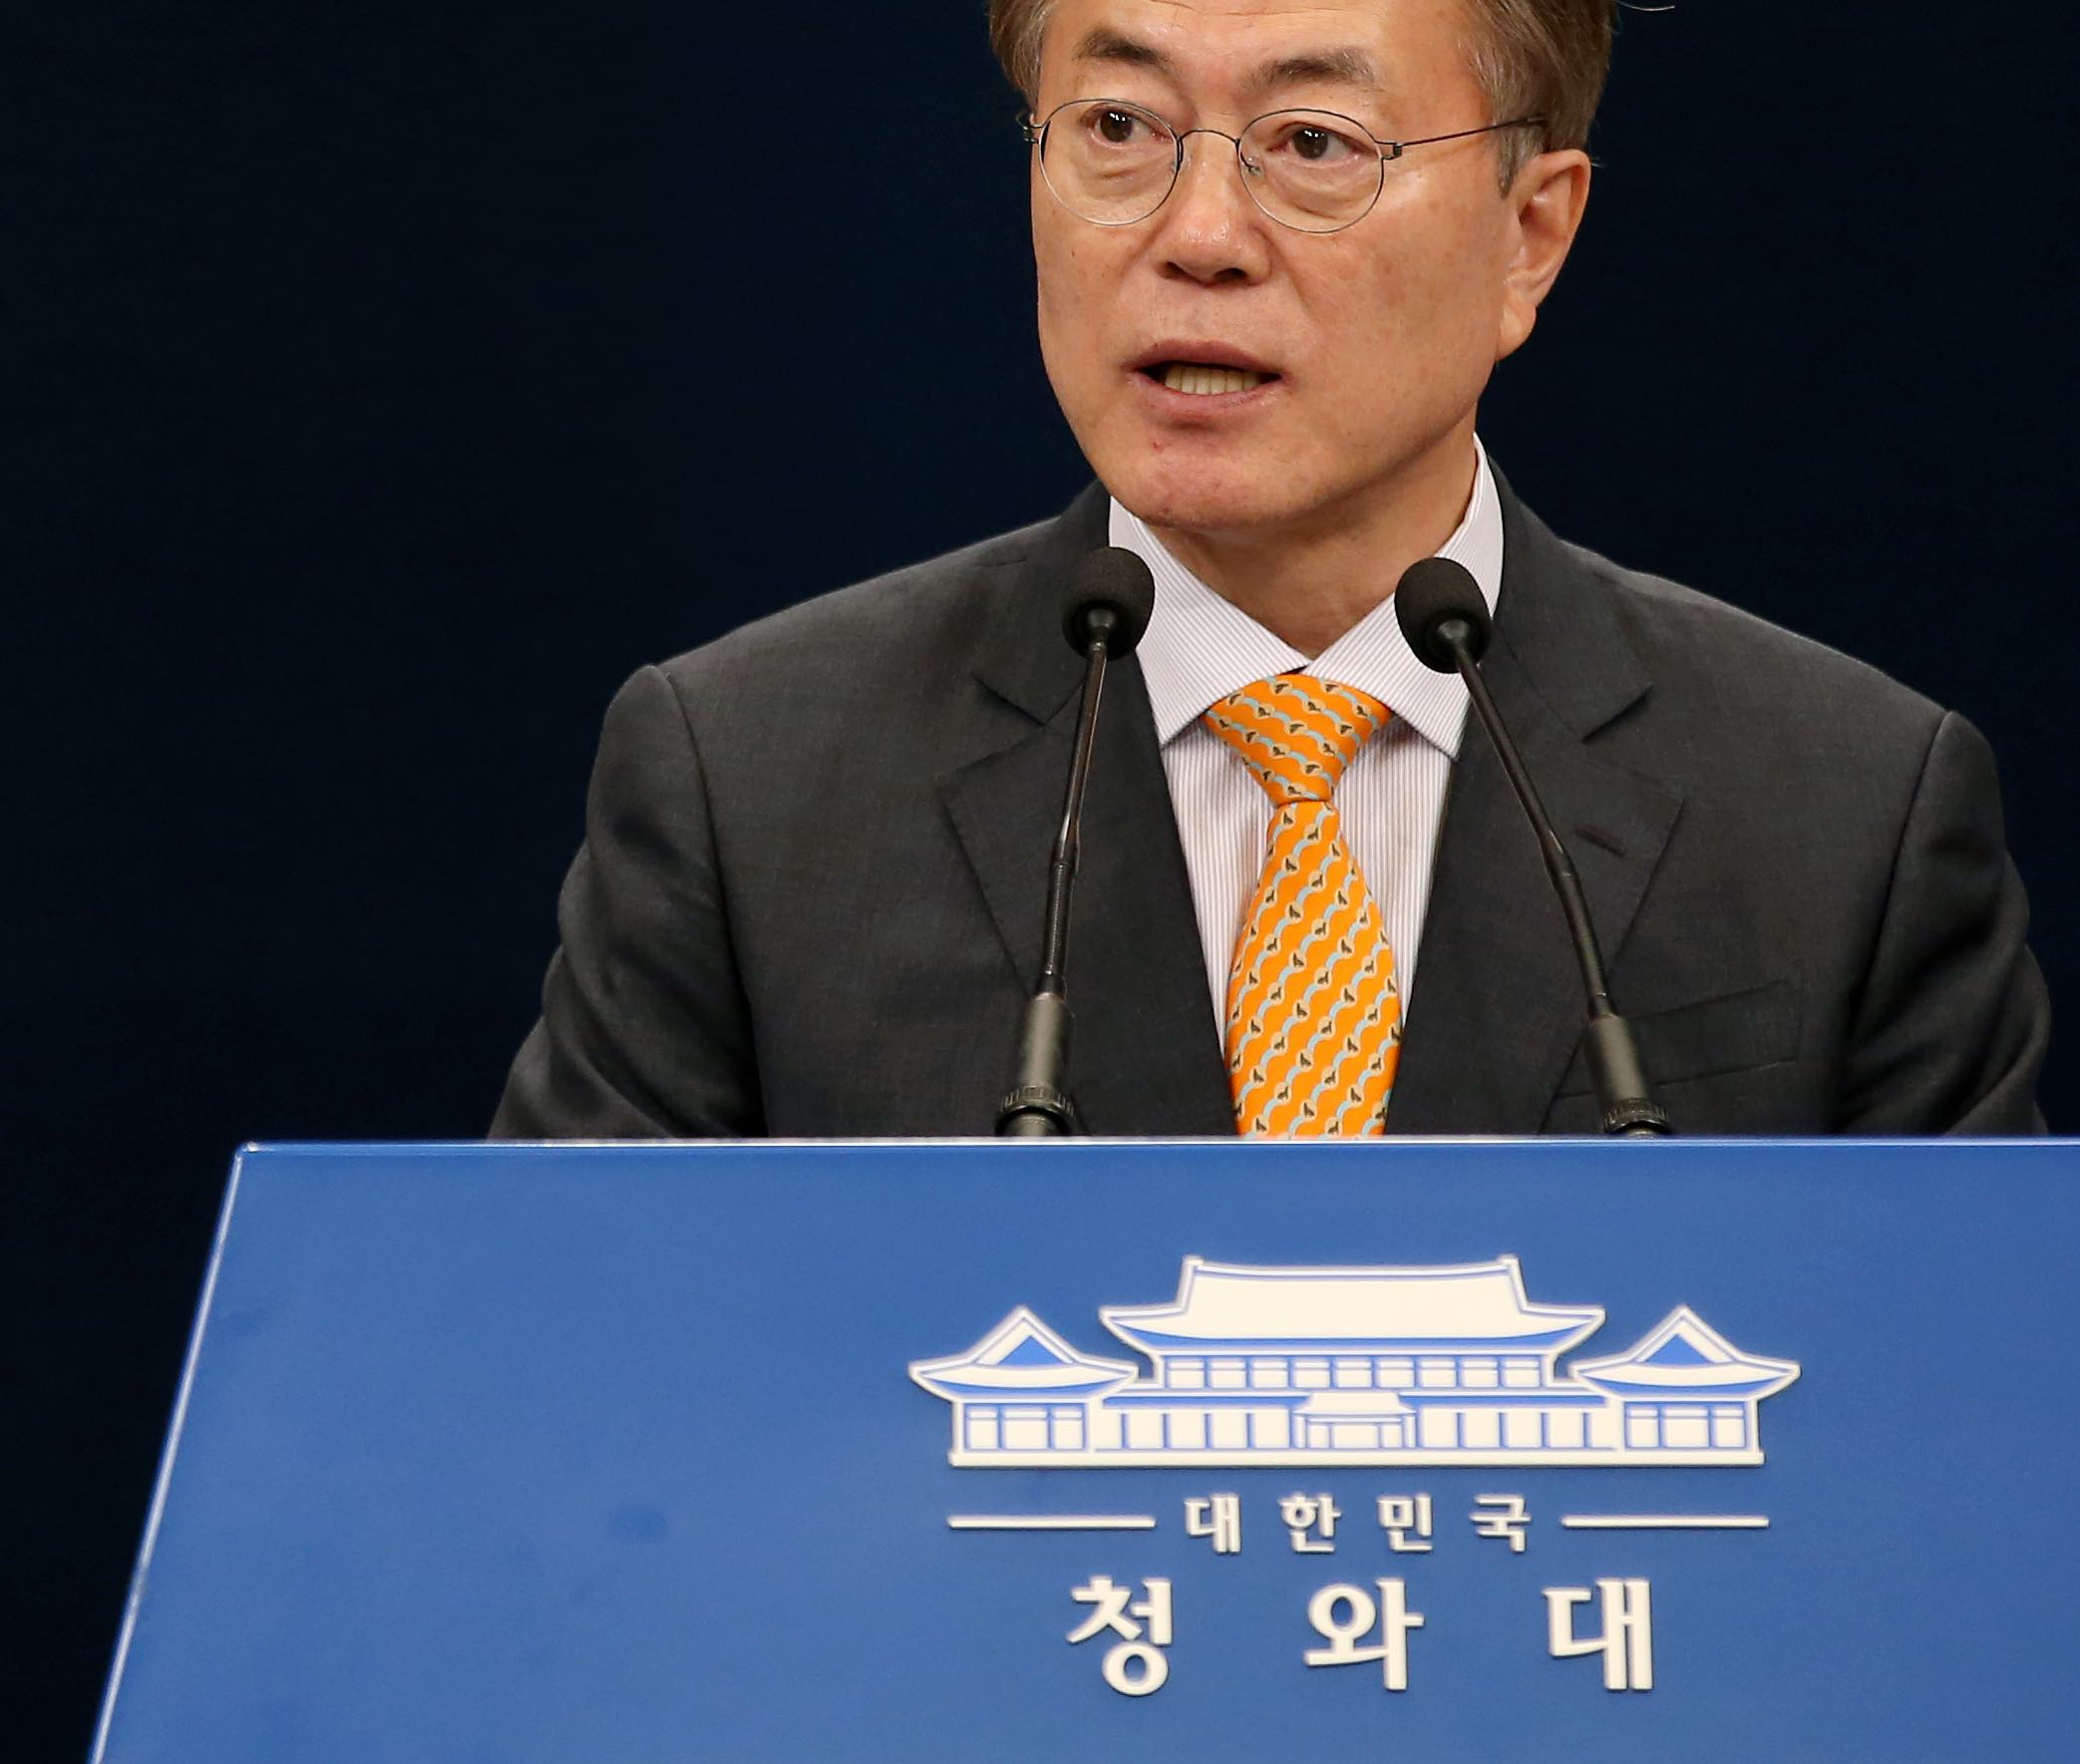 President Moon Jae-in (Photo: Republic of Korea/Flickr)